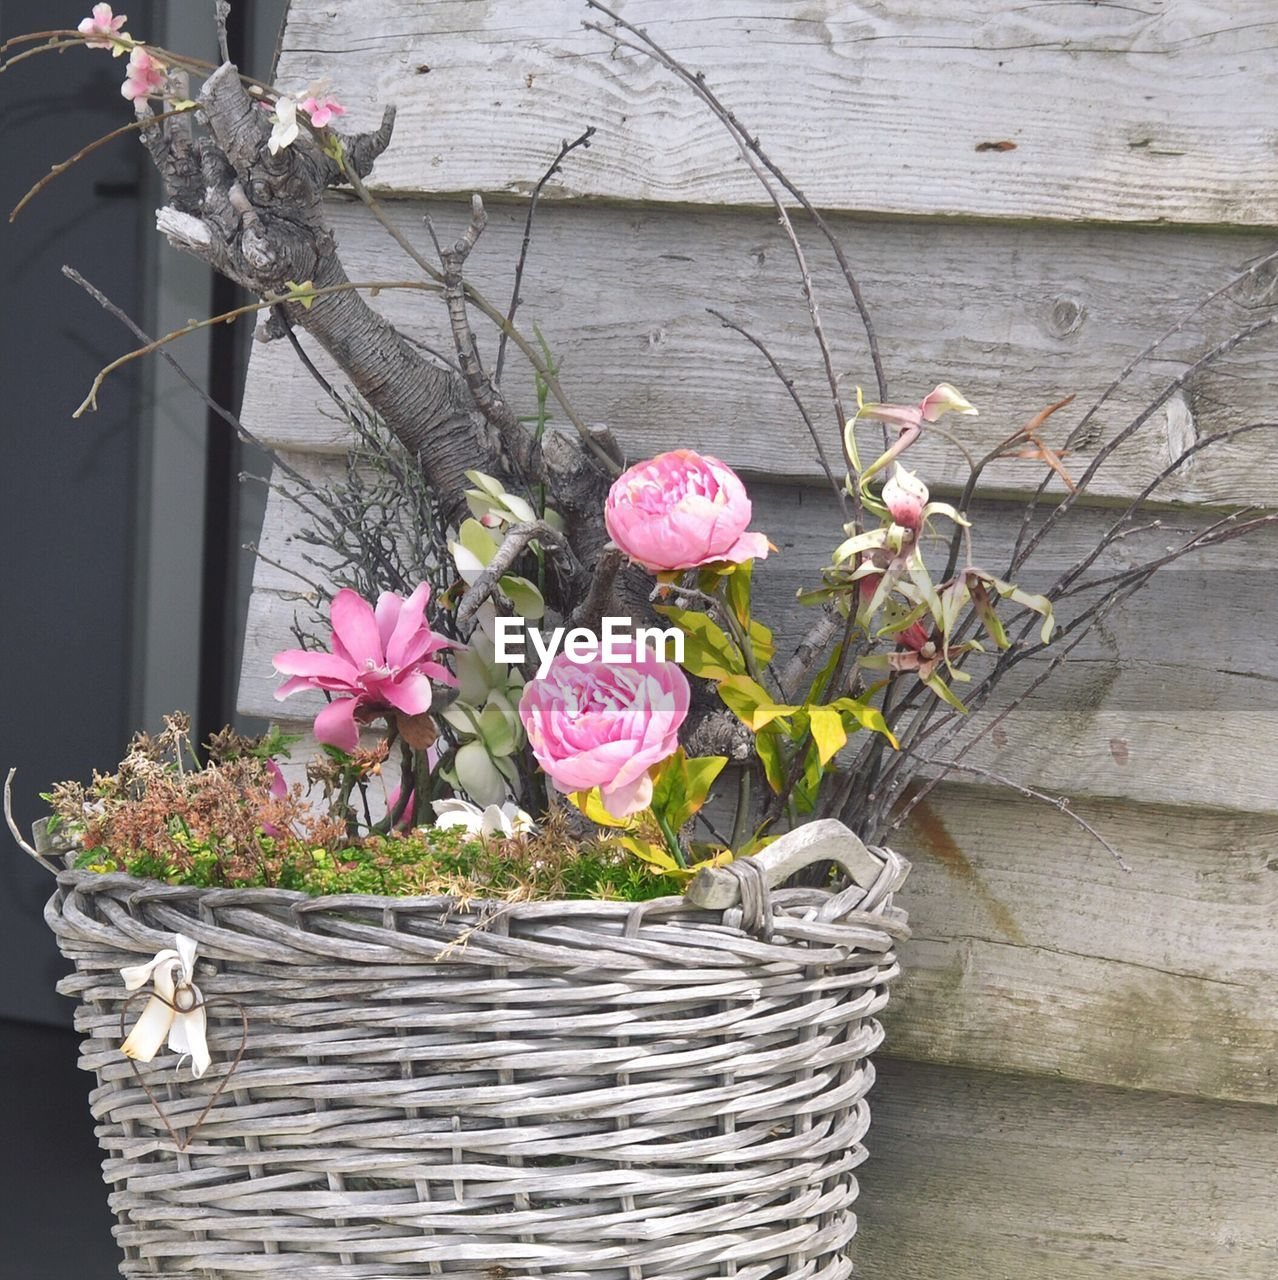 flower, basket, pink color, petal, no people, outdoors, day, freshness, fragility, plant, wood - material, nature, growth, beauty in nature, flower head, close-up